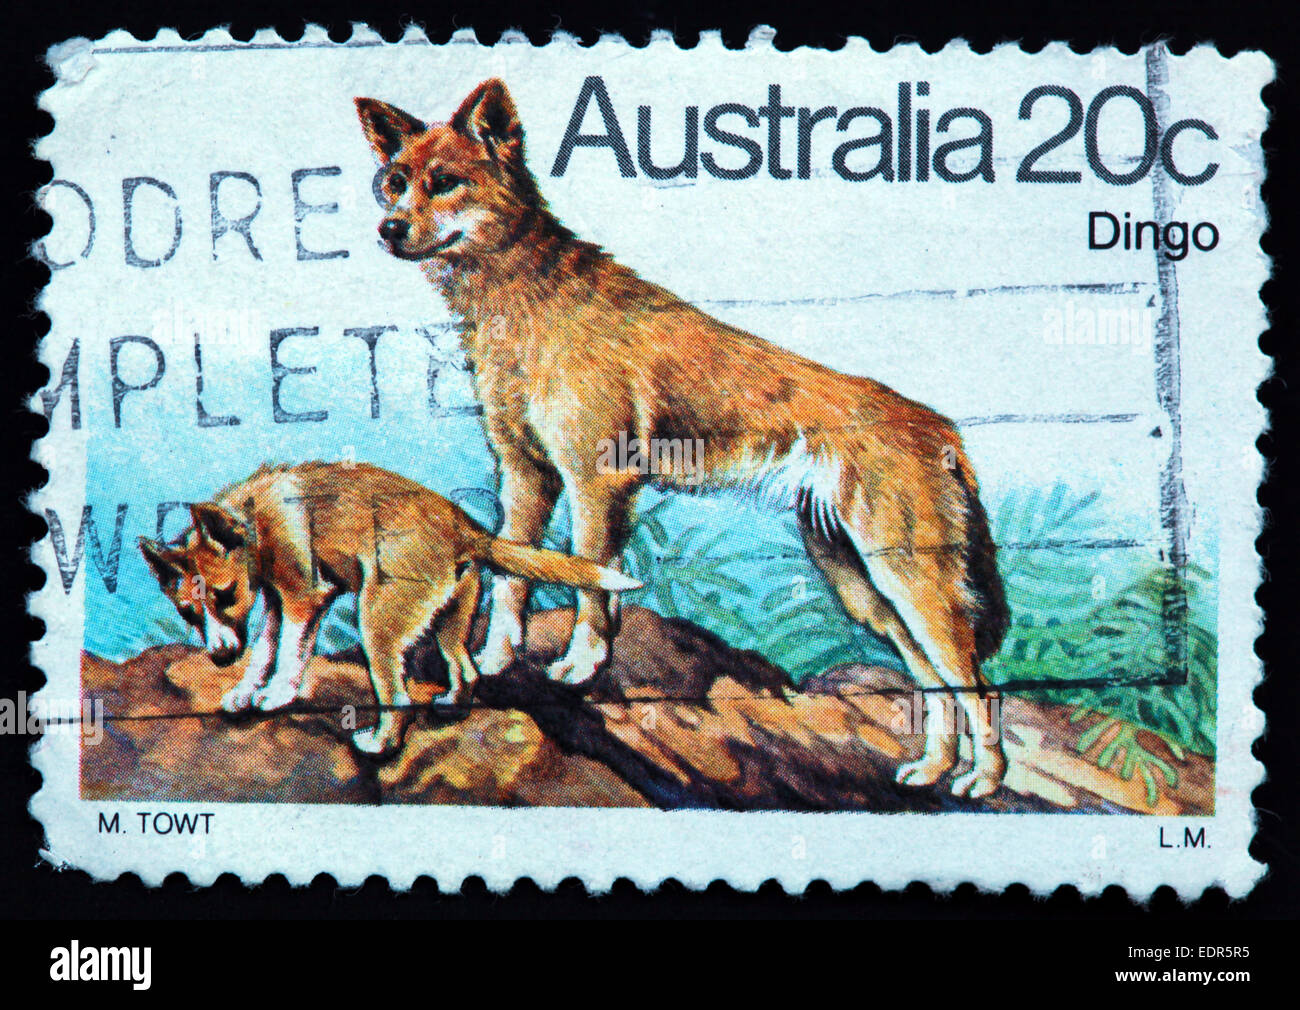 animal,animals,mammal,mammals,dingos,Australia,stamp,Used,and,postmarked,Australia,Austrailian,Stamp,post,posting,mail,hobby,perforation,mark,postage,stamp,print,stamp,cancelled,stamp,payment,correspondence,postman,collection,collector,philately,philatelist,letter,price,hist,Gotonysmith,standing,pair,pair of dingos,range,country,countryside,rock,Two Dingos on a rock,stamp,print,stamp,cancelled,canceled,stamp,payment,correspondence,postman,collection,collector,philately,philatelist,letter,price,history,retro,Australian,Vintage,delivery,date,relationship,communication,Oz,Australia,DownUnder,classic rare unique Austrailian financial,investment,invest,value,British,empire,nation,canceled,printed on black background,close-up,closeup,close,up,sent,send,philately,mailing,shipping,postoffice,office,isolated,circa,special,colour,color,postmarked,marked,airmail,aged,antique,retro,cutting,historic,old,stamps,collection,stamp collection,album,Timbre,Sello,Stempel,Selo,Down Under,Black background,Buy Pictures of,Buy Images Of